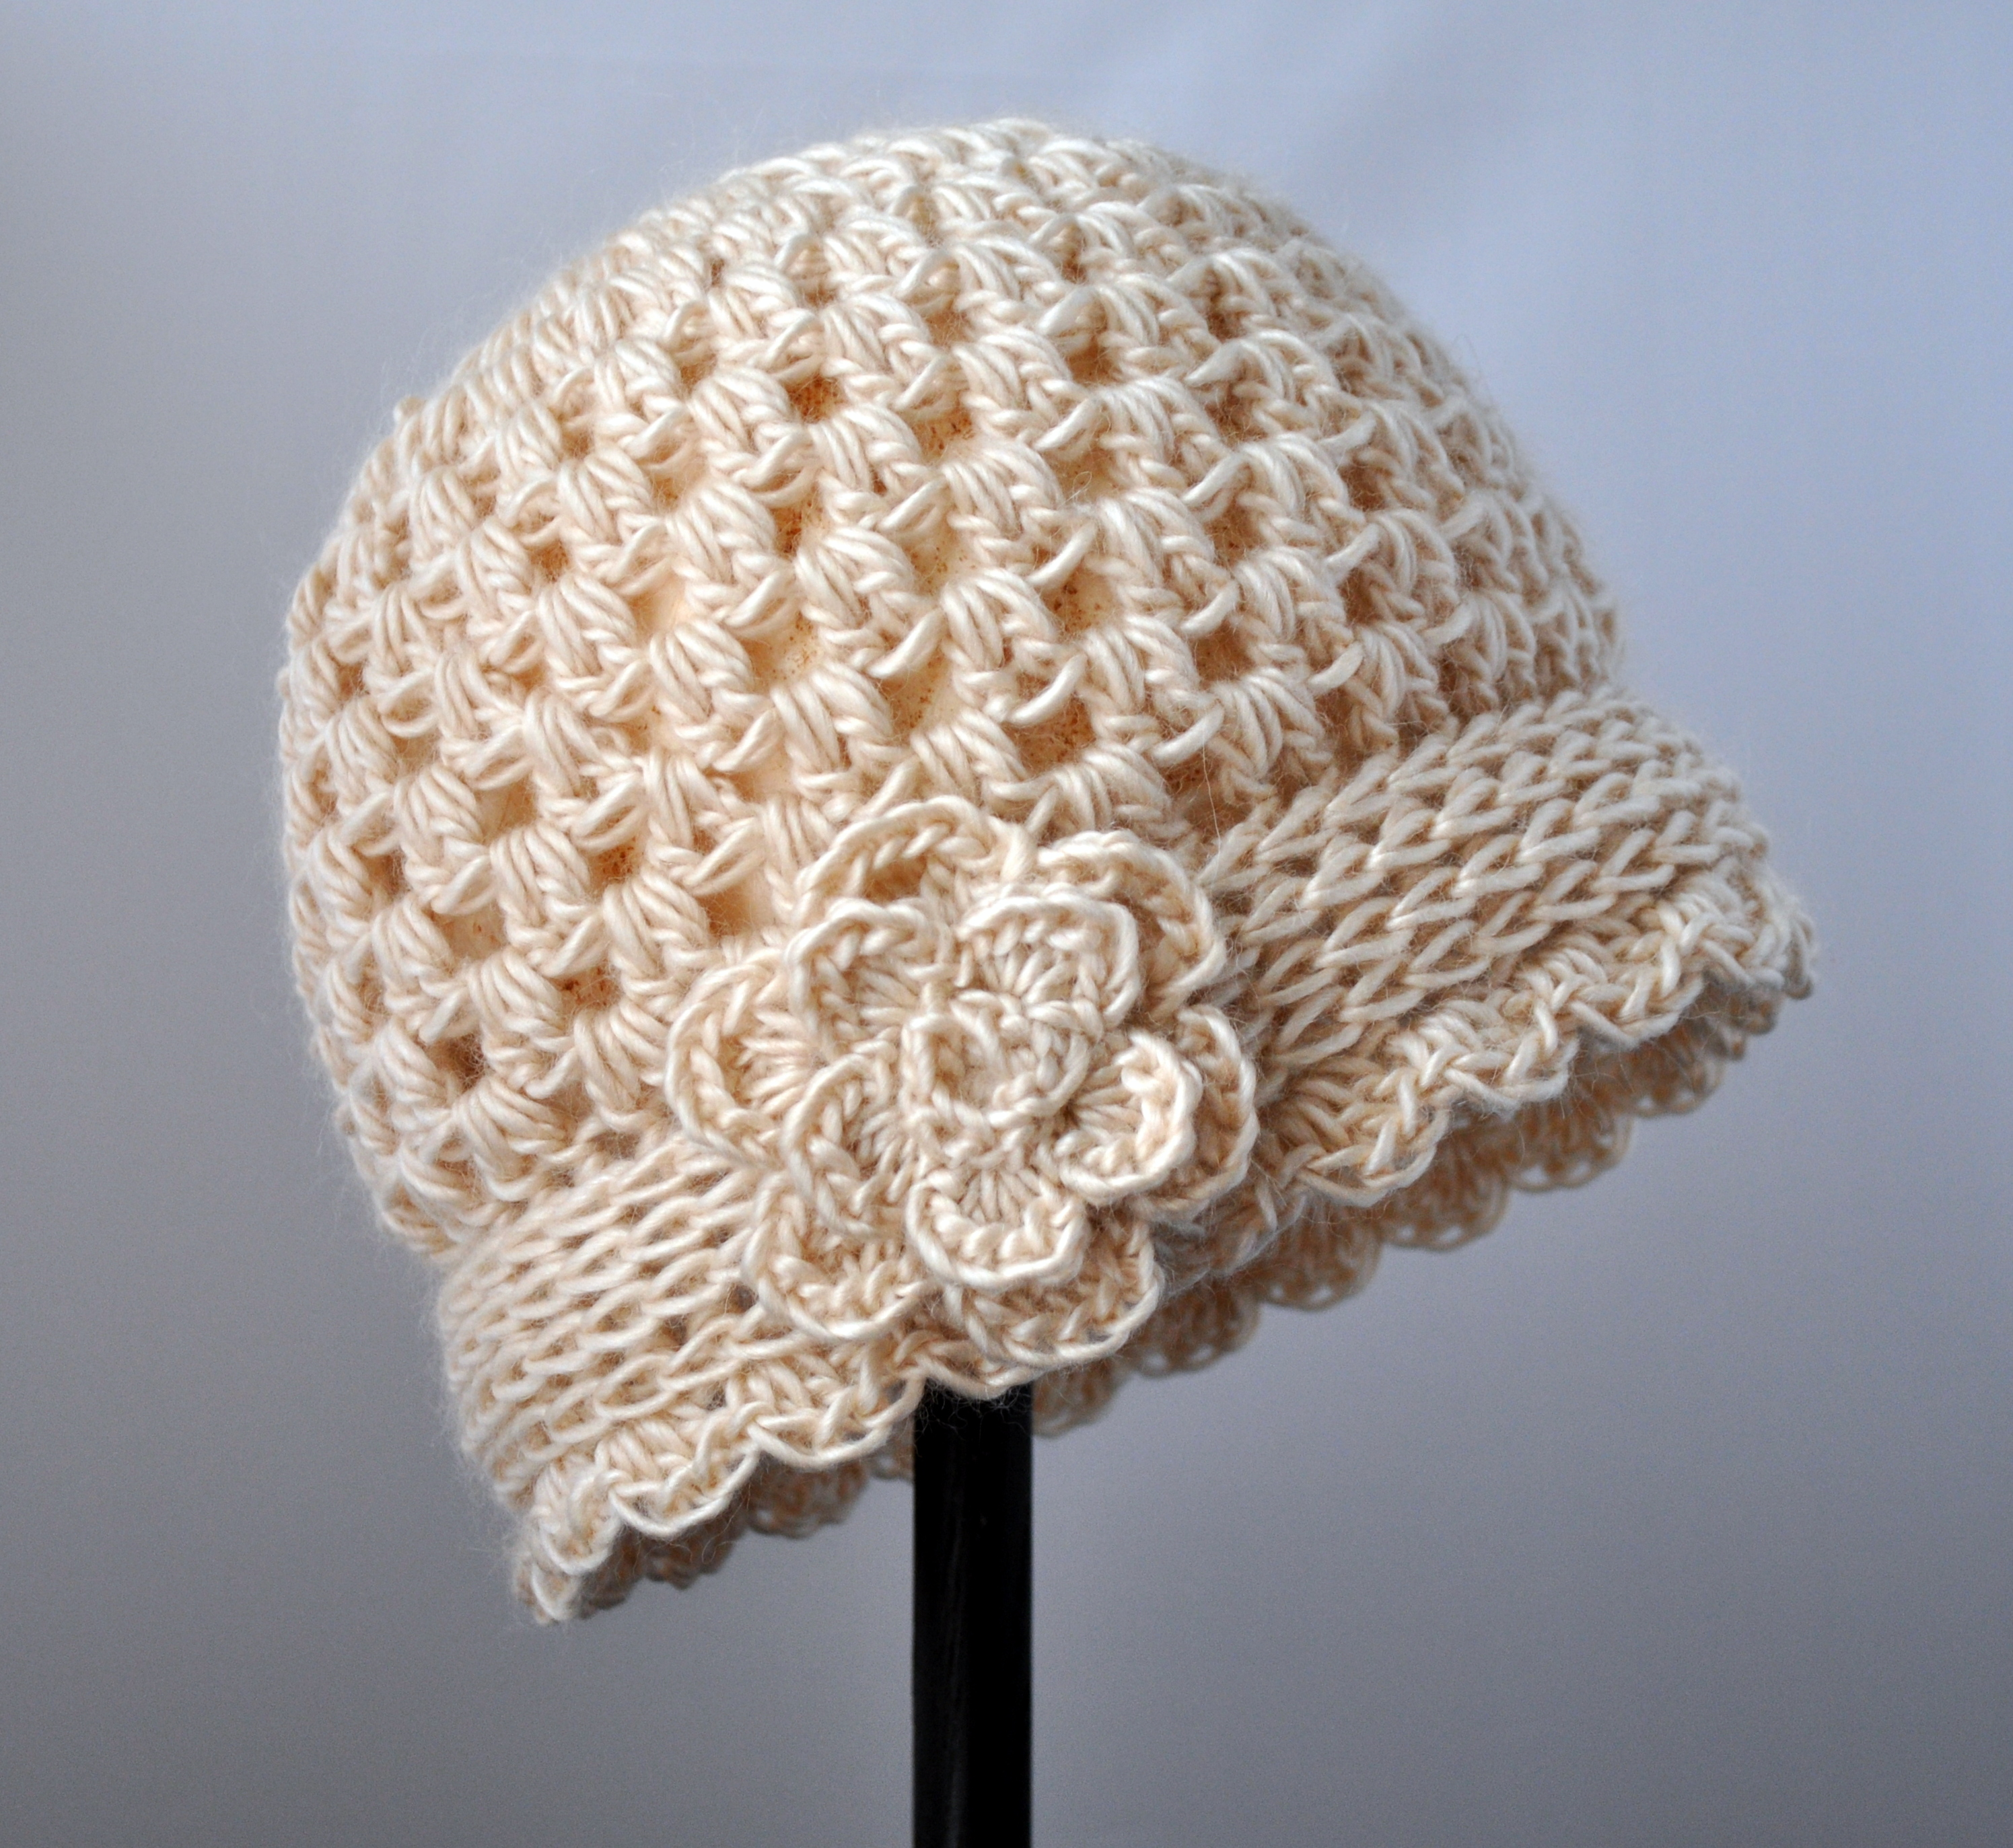 About Crochet : Crochet Vintage Flowered Cloche Pattern Classy Crochet